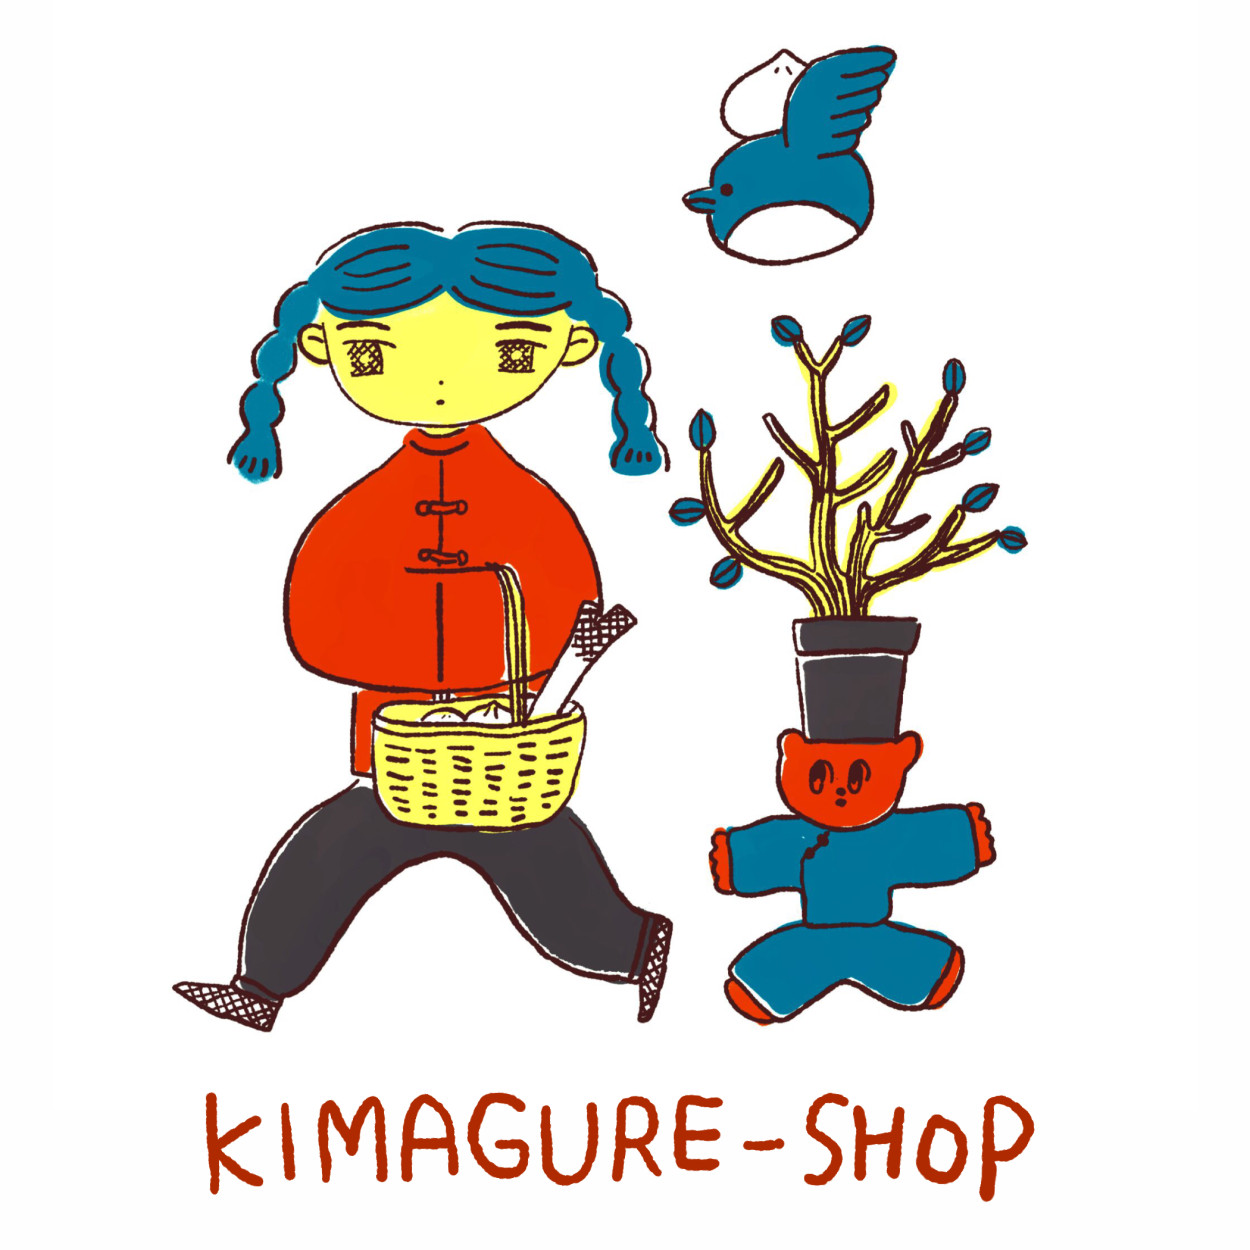 KIMAGURE-SHOP